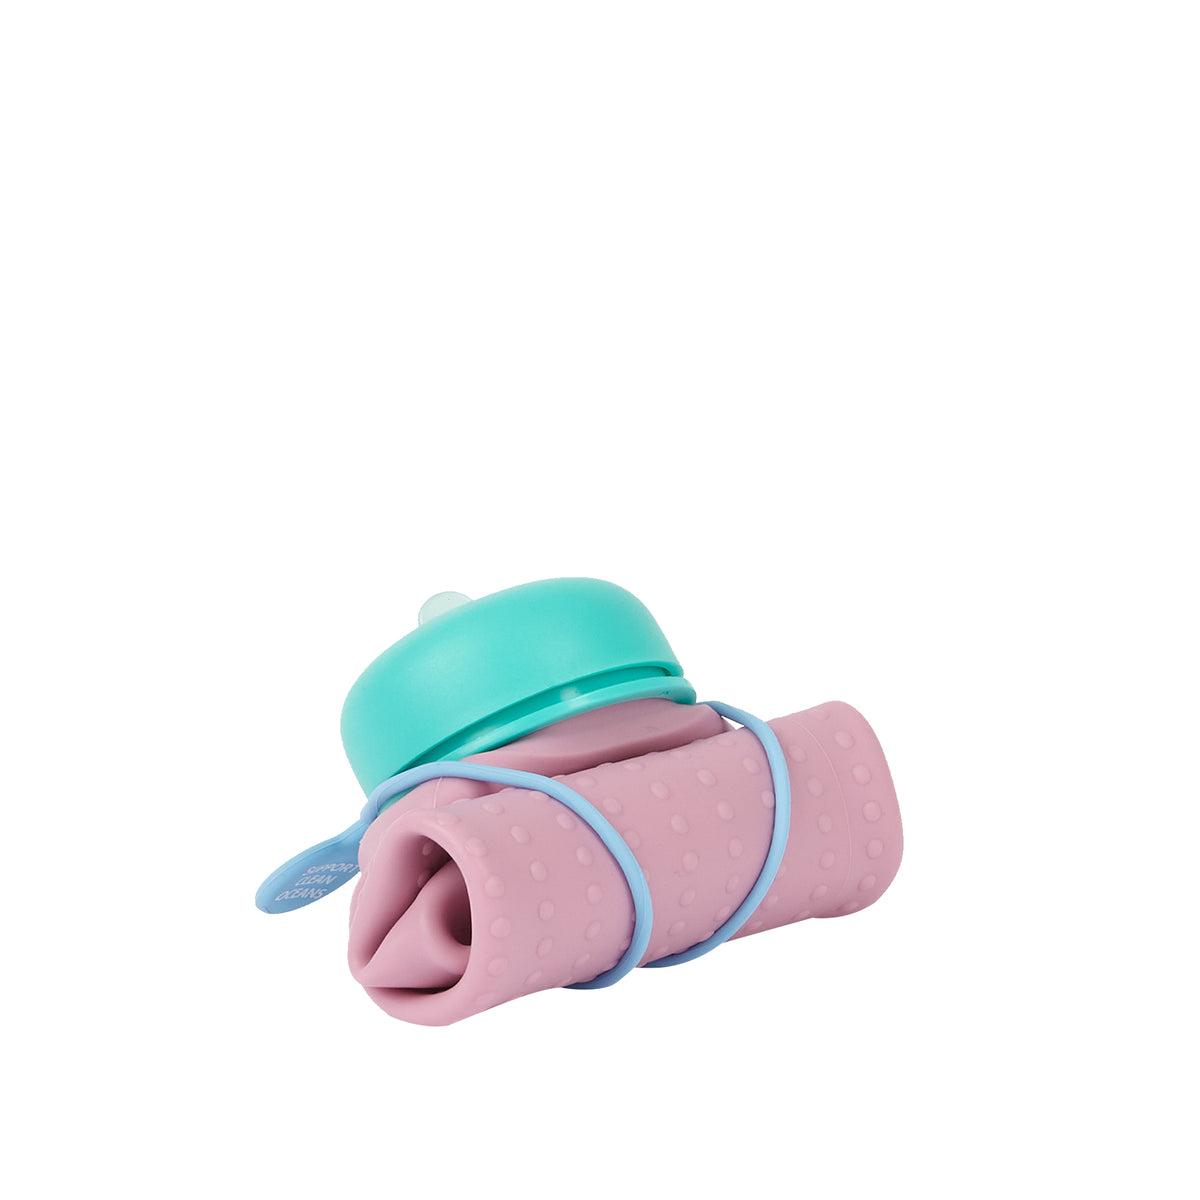 olla Bottle - Pink Lilac, Teal Lid + Dusty Blue Strap - rolled